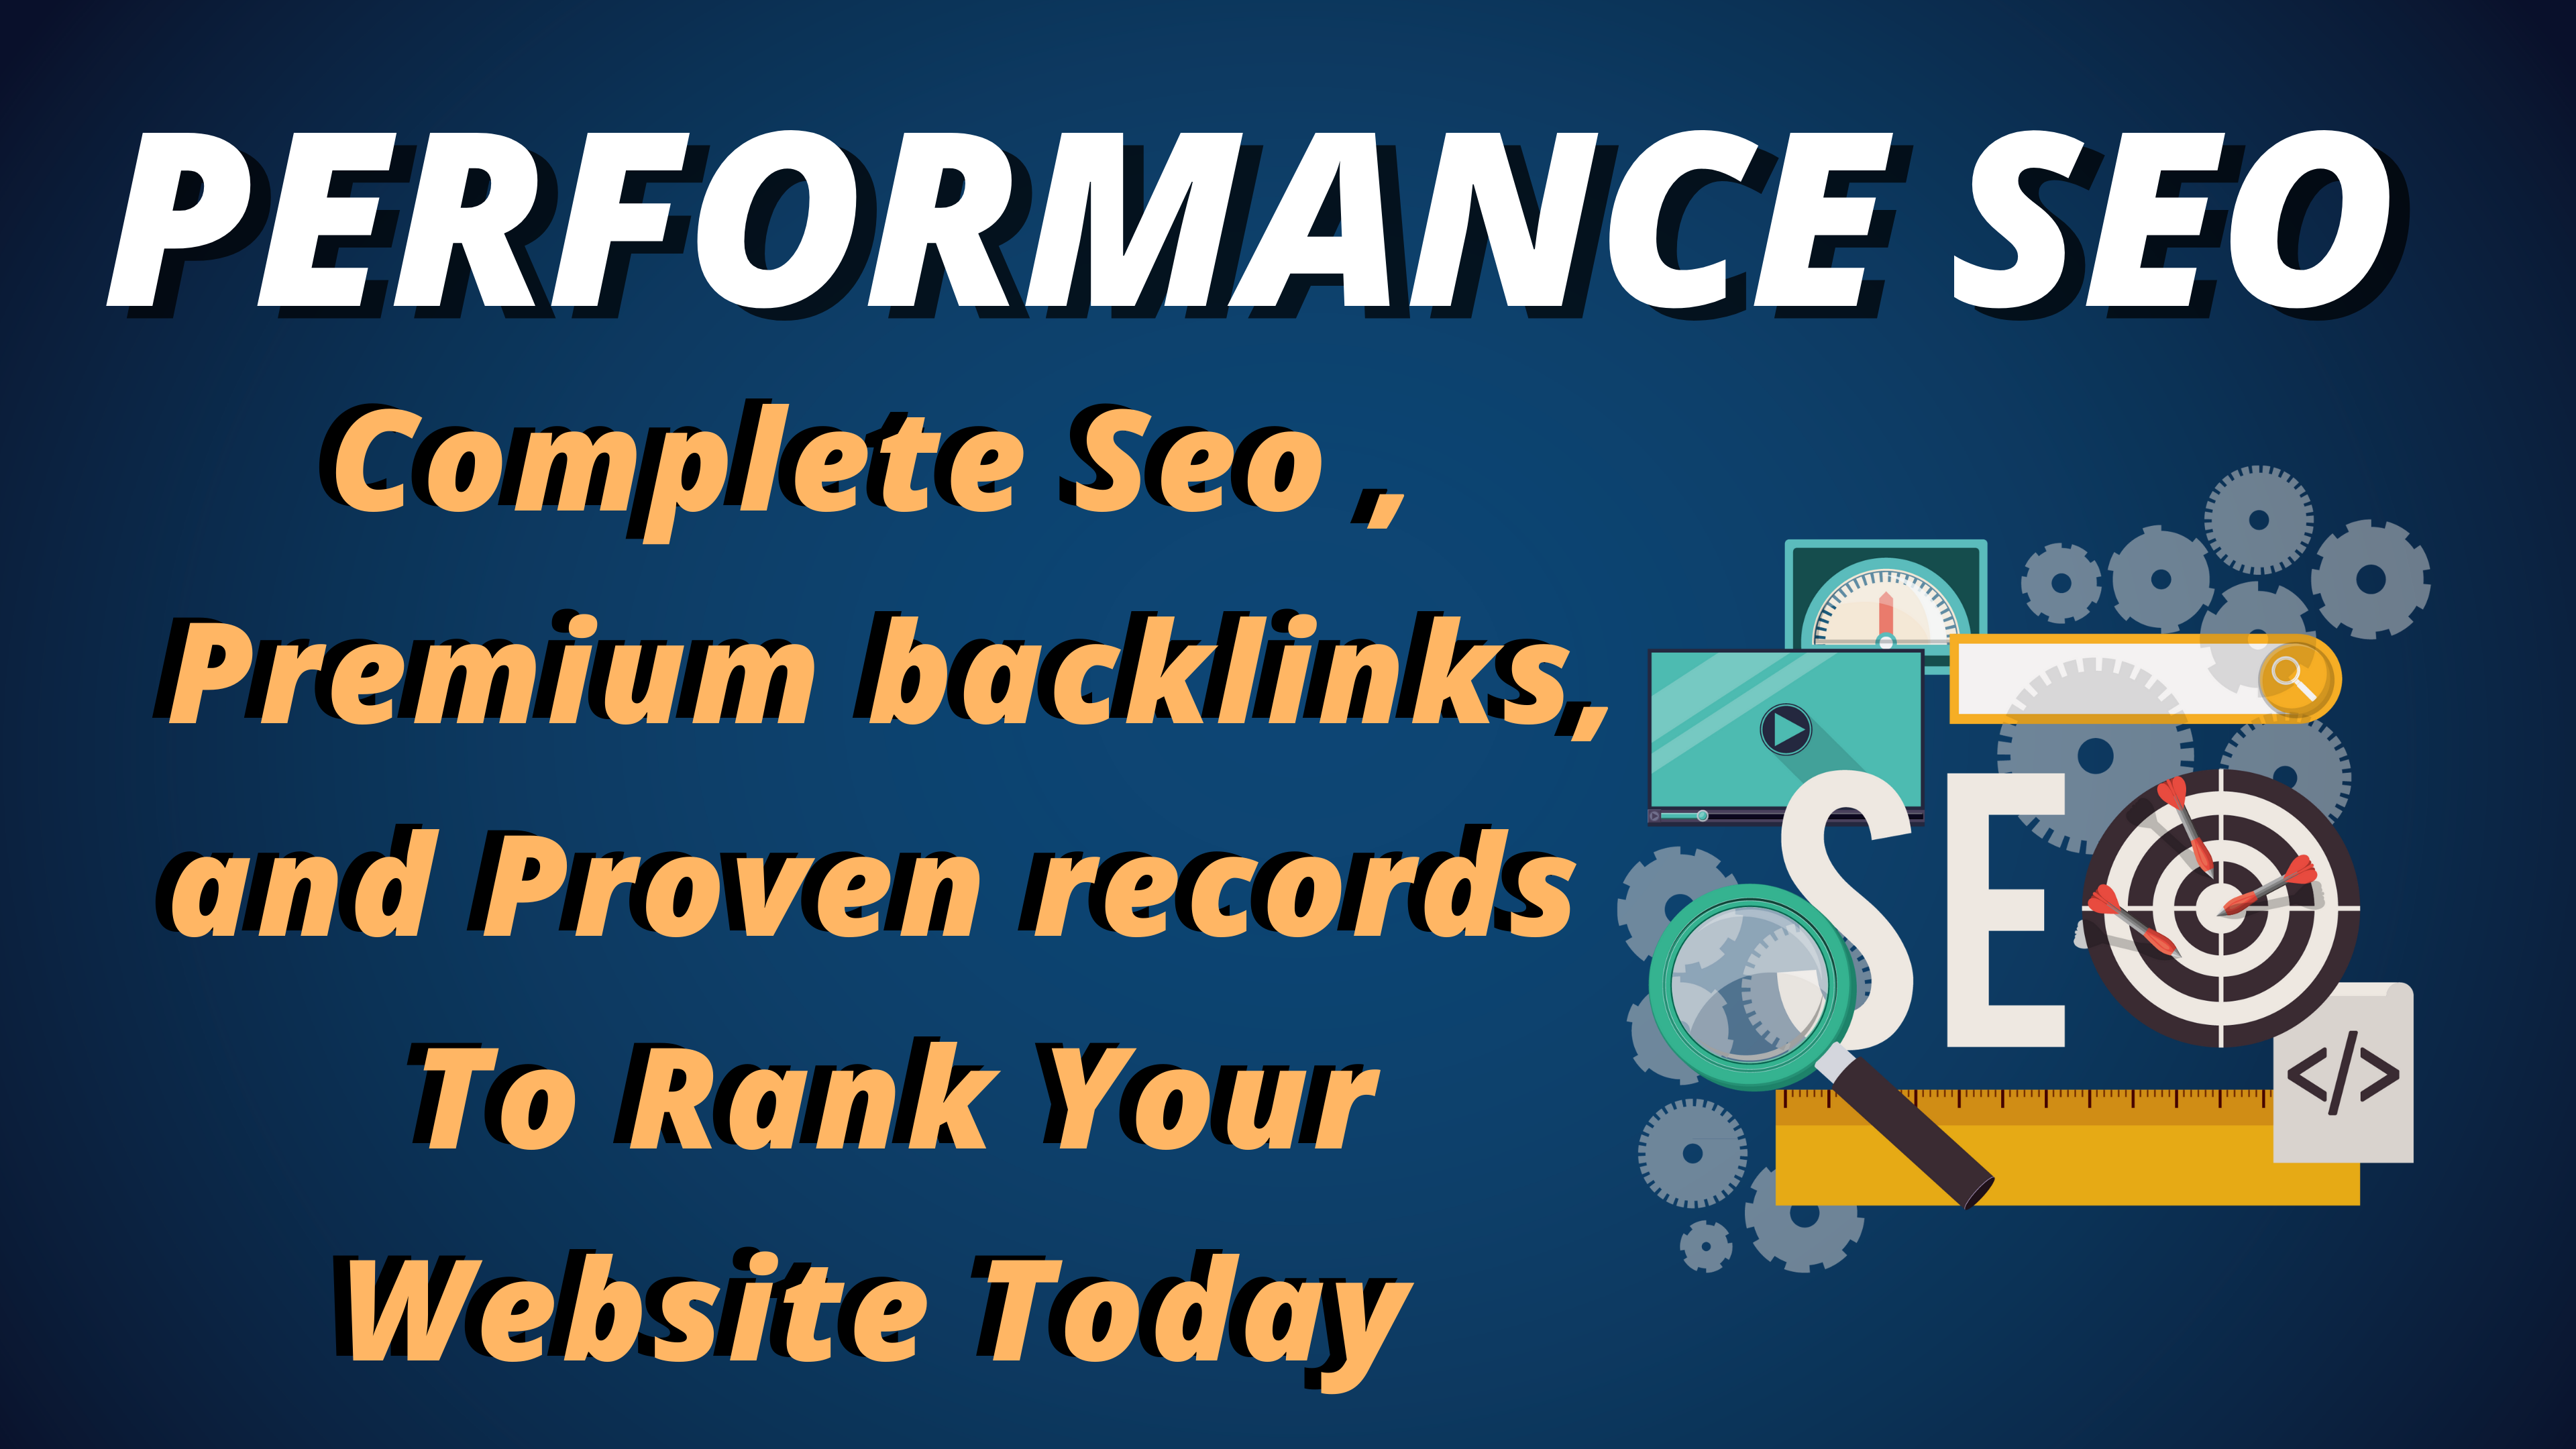 Skyrocket your Website with Premium backlinks,  and Proven records To Rank Your Website Today